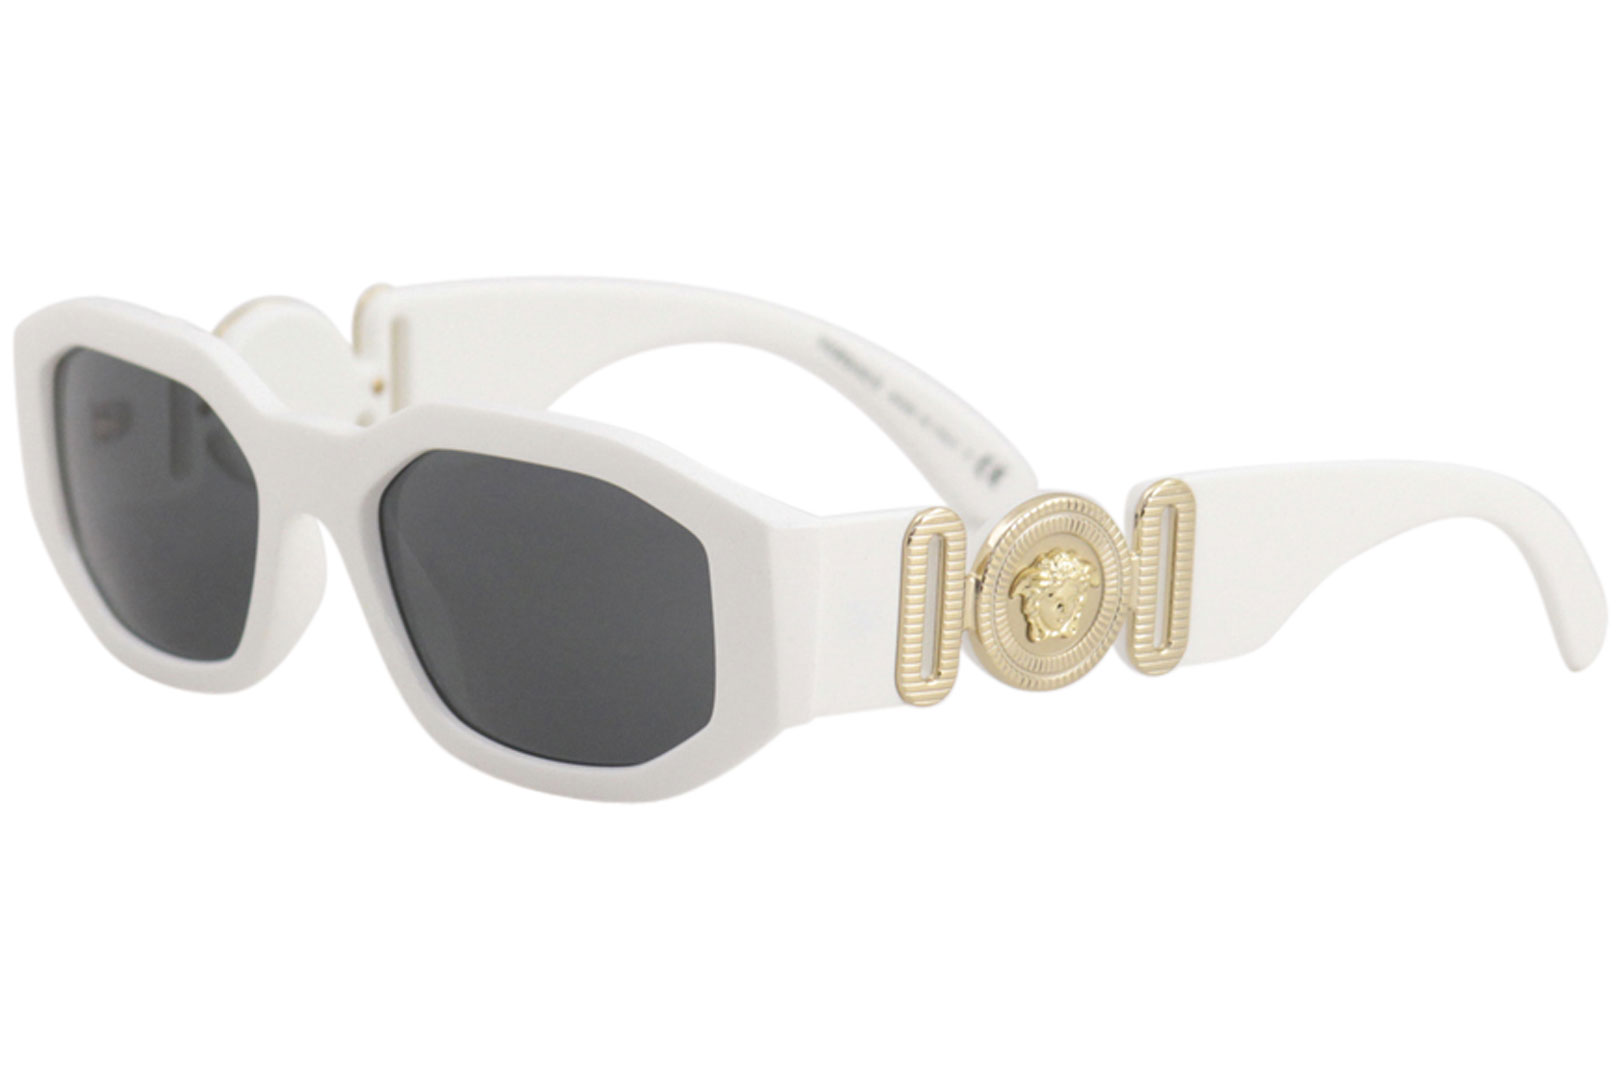 00abc468bc45 Versace Women's VE4361 VE/4361 401/87 White/Gold Rectangle ...